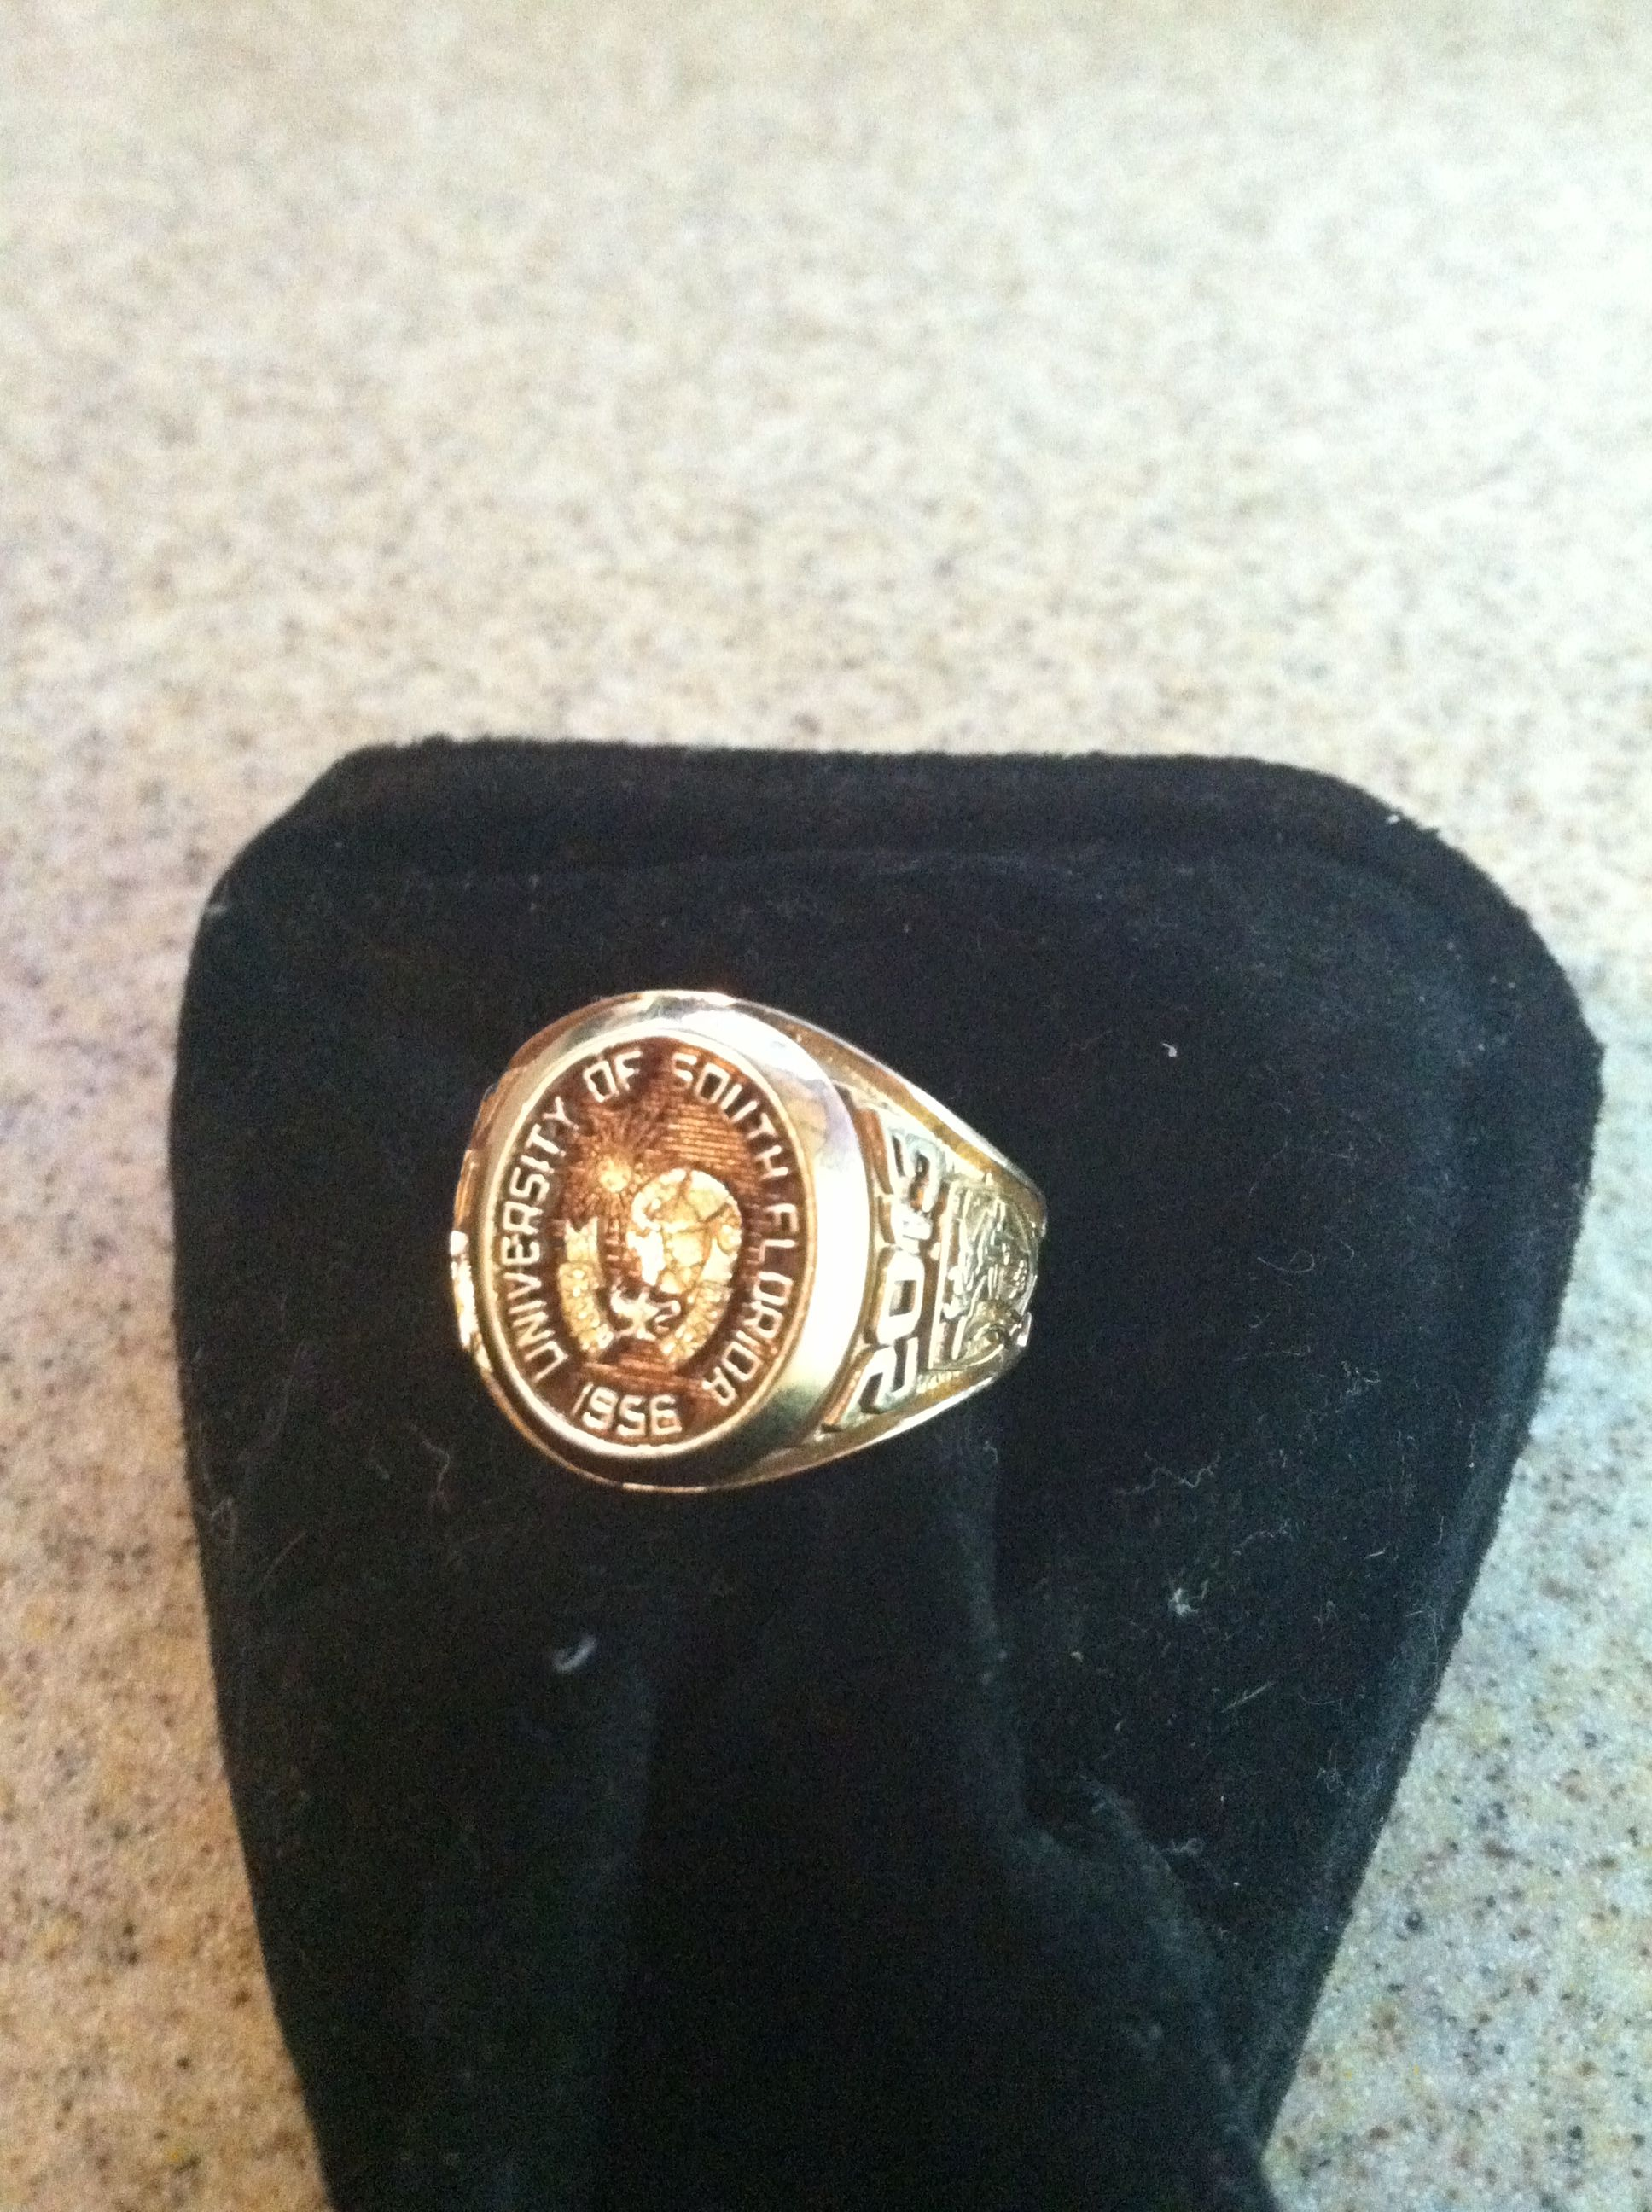 My USF ring | USF! | Rings, Class ring, University of south